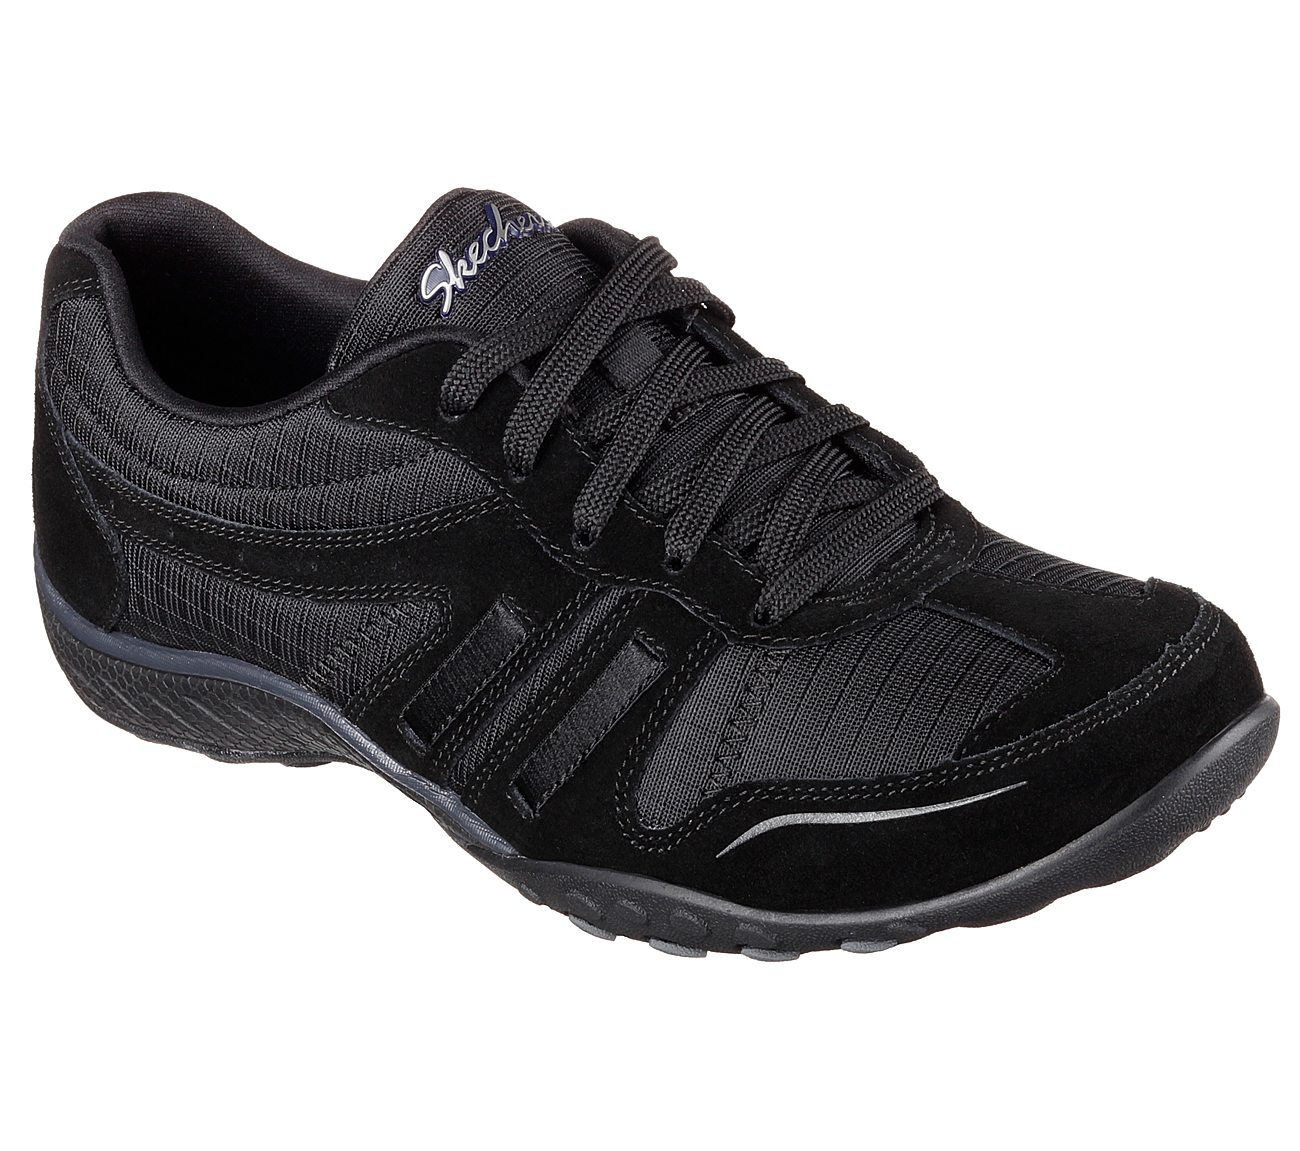 Skechers Breathe Easy Jackpot Relaxed Fit Sneaker Black Q35u5999